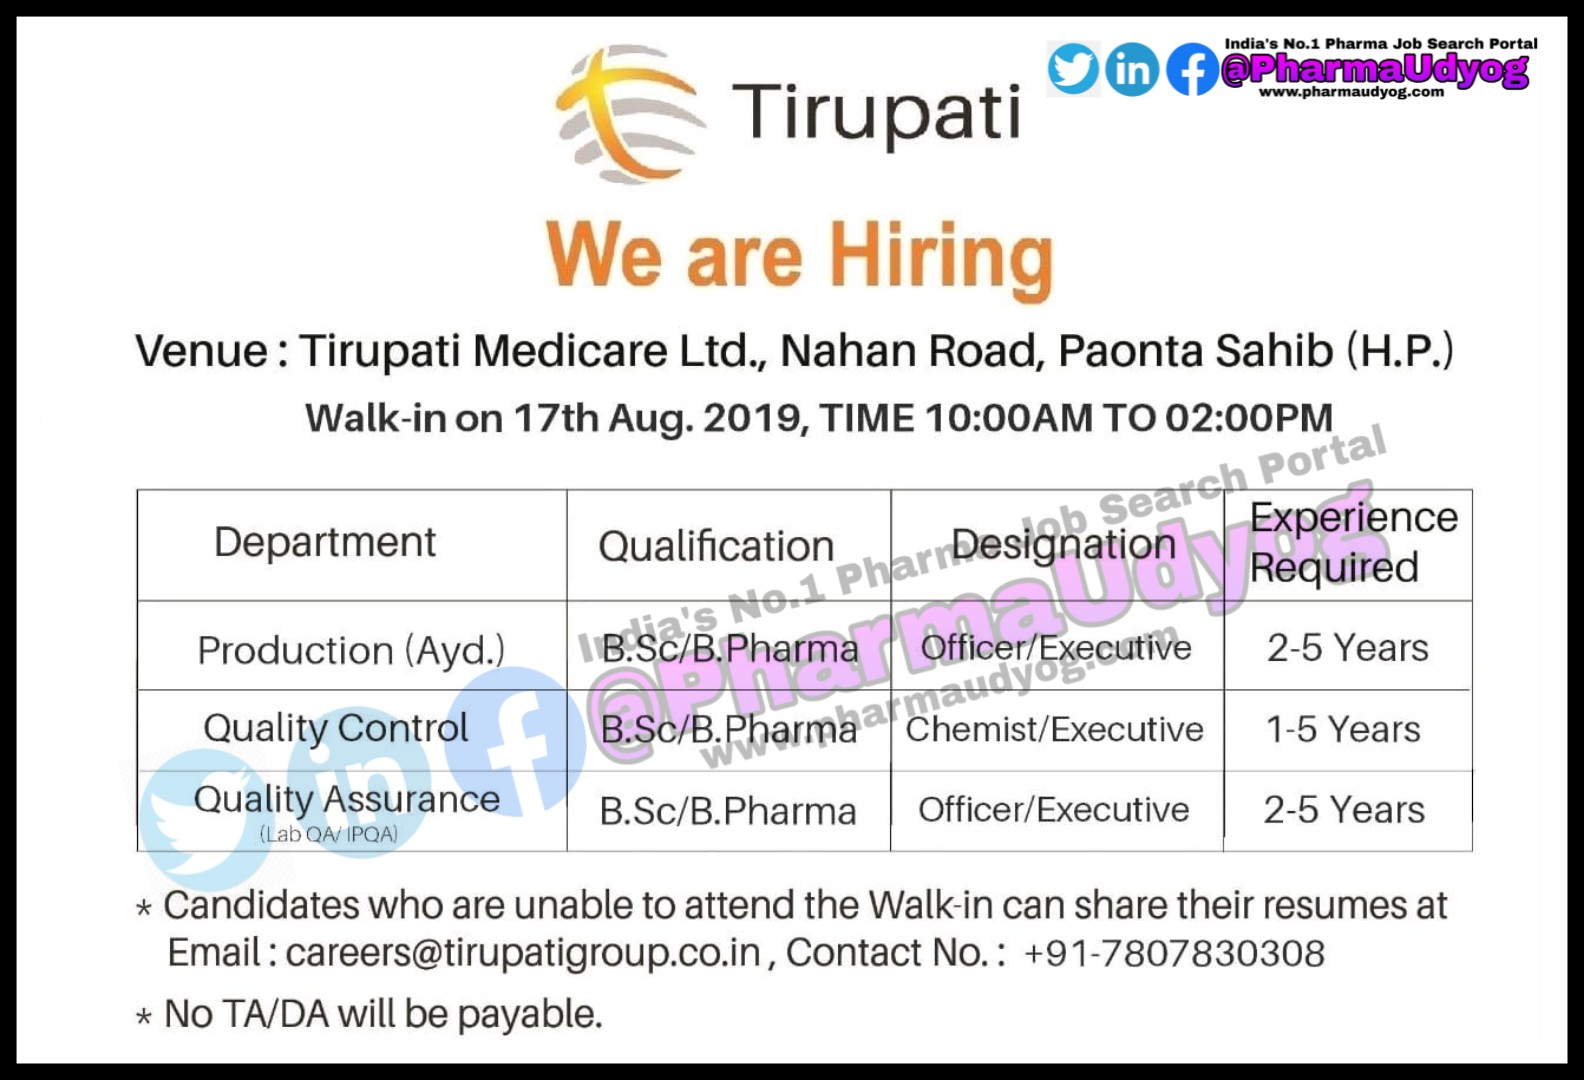 Tirupati Pharma | Walk-in interview for Production- QC- QA